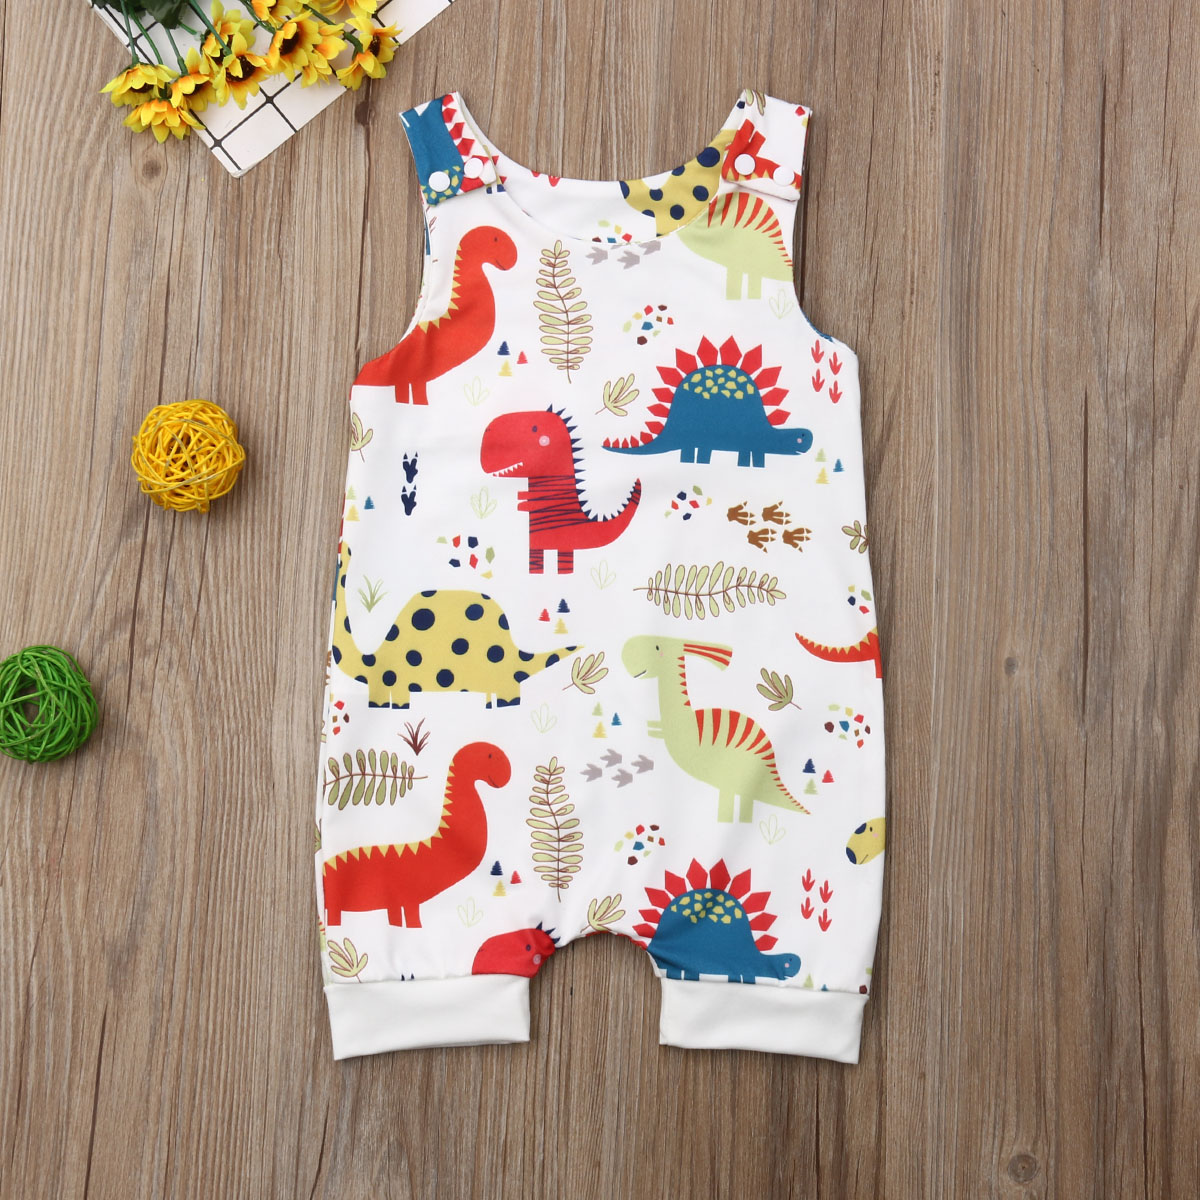 Pudcoco Newborn Baby Boy Girl Clothes Cute Dinosaurs Print Sleeveless Romper Jumpsuit One-Piece Outfit Sunsuit